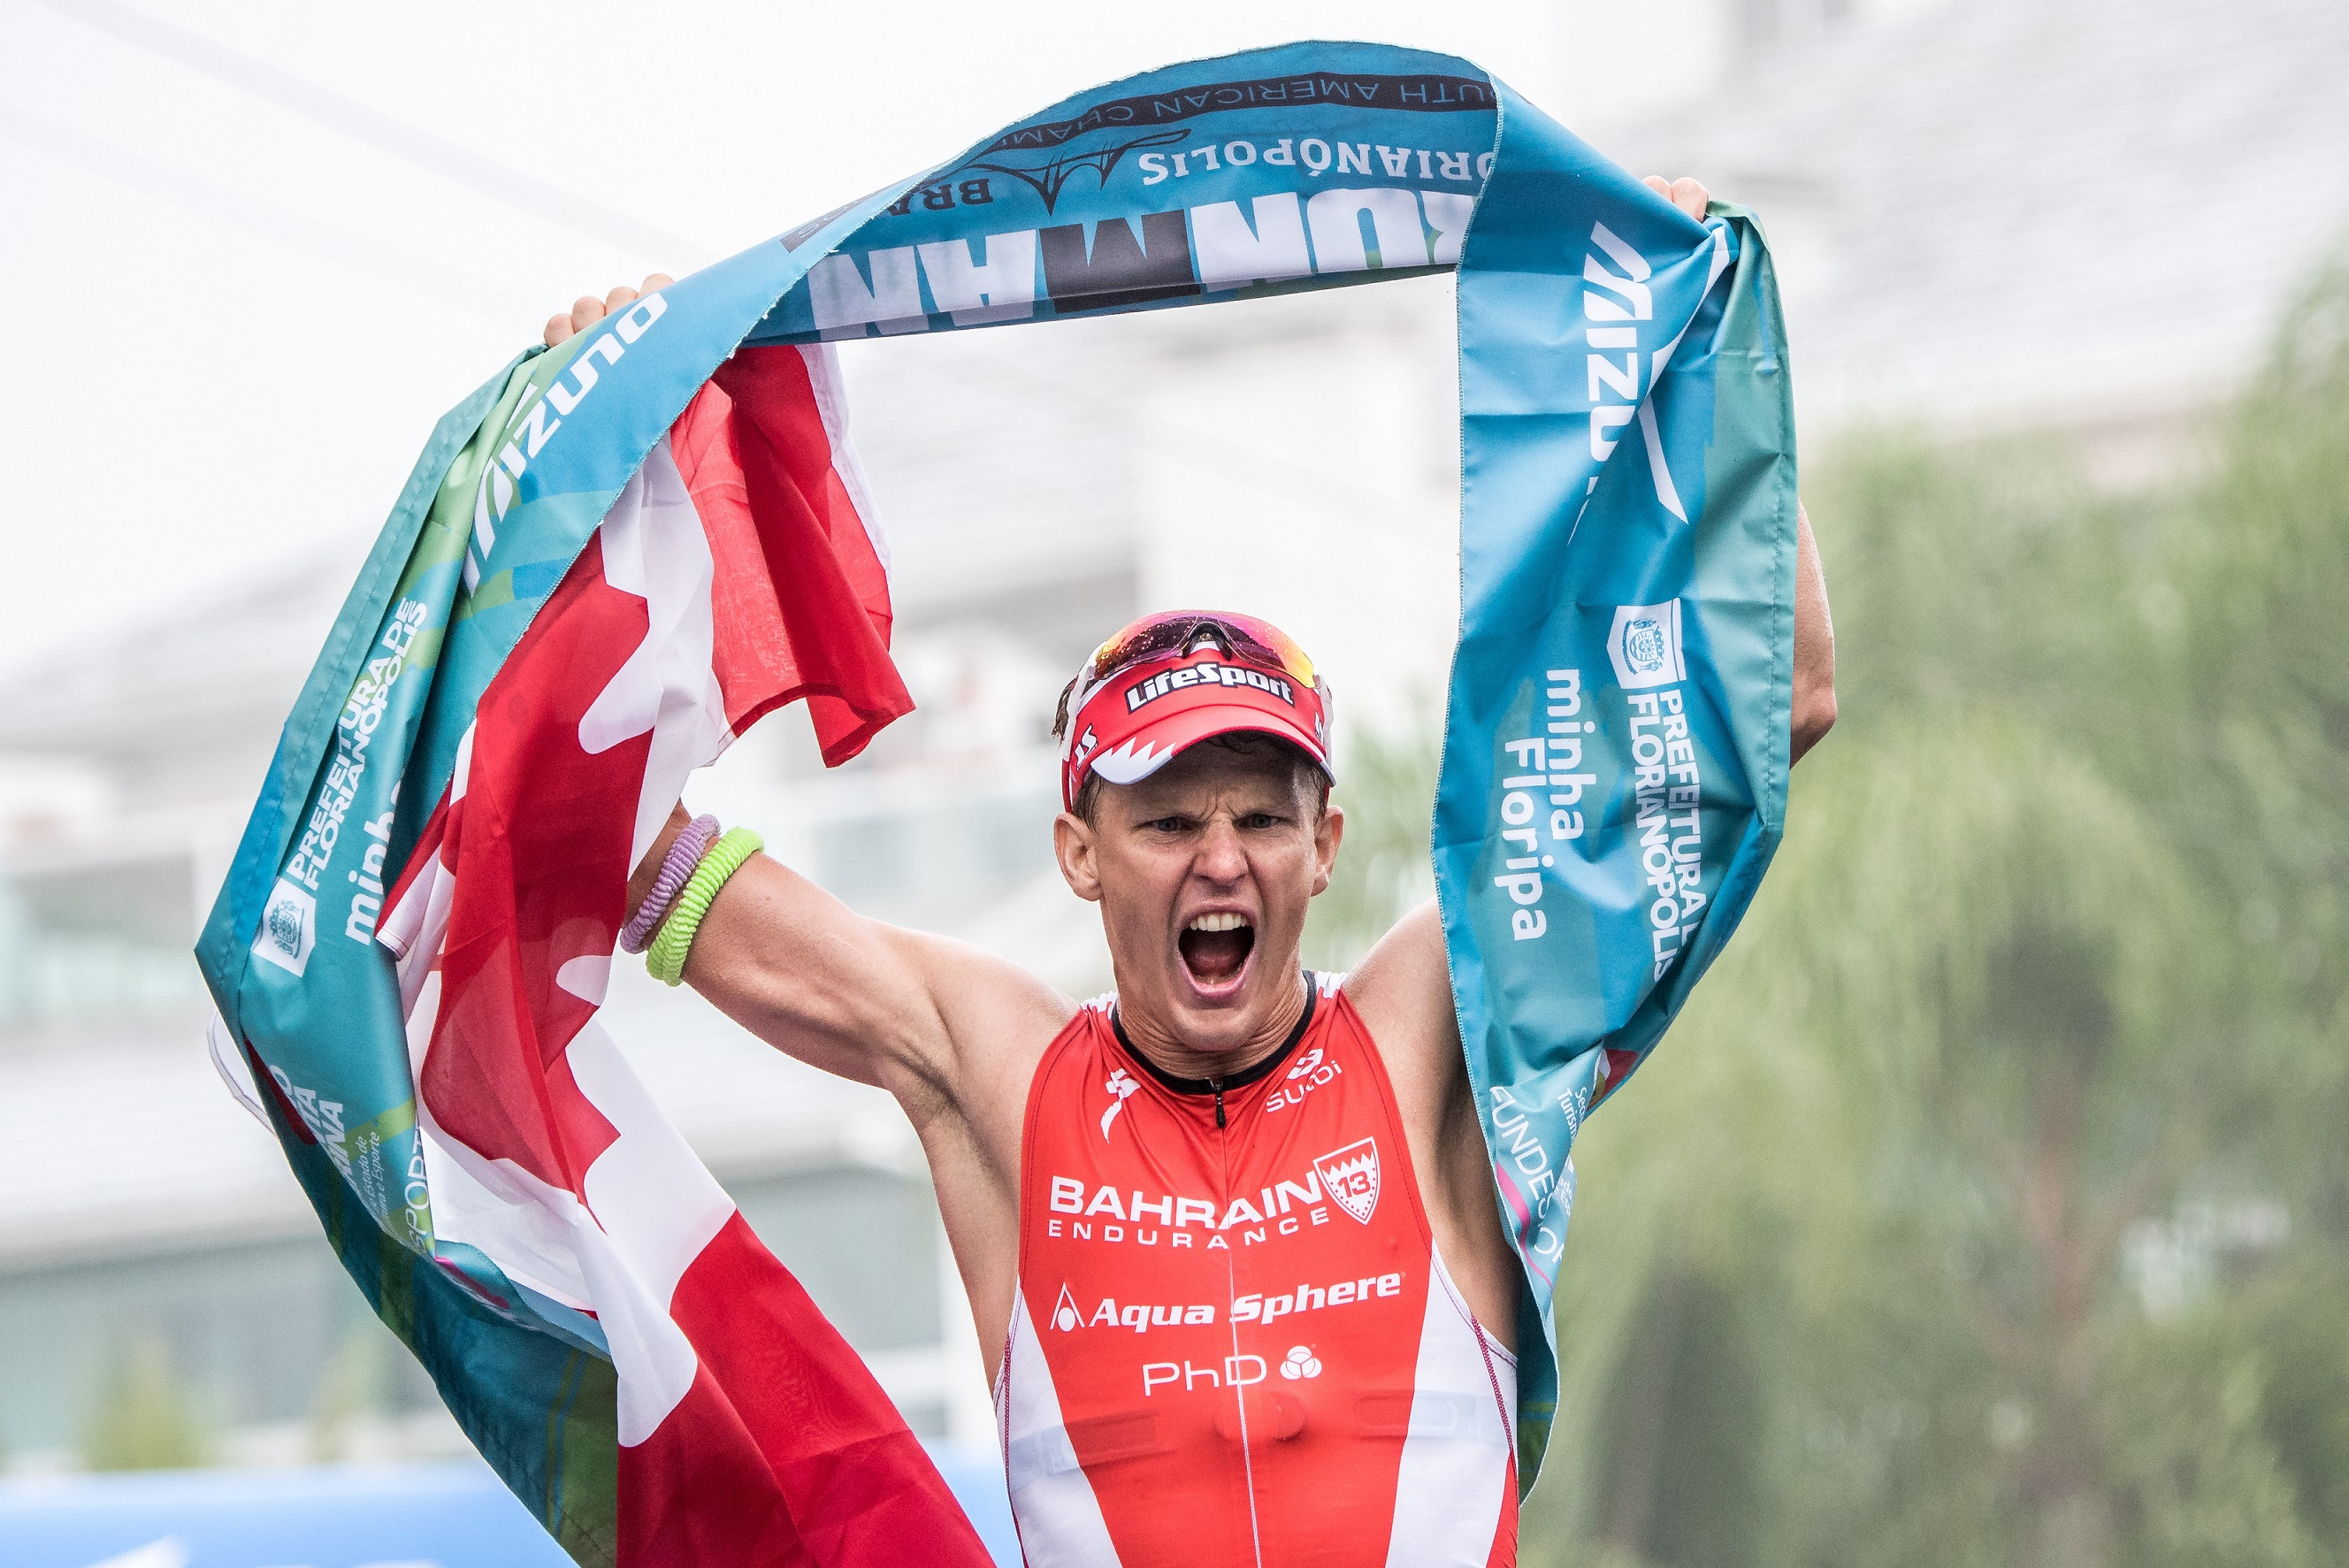 Pro Triathlete Brent McMahon Wins IRONMAN Florianapolis in Brazil, the South American World Championships, setting the 2nd fastest IRONMAN time in history and a course record; now Kona ready.